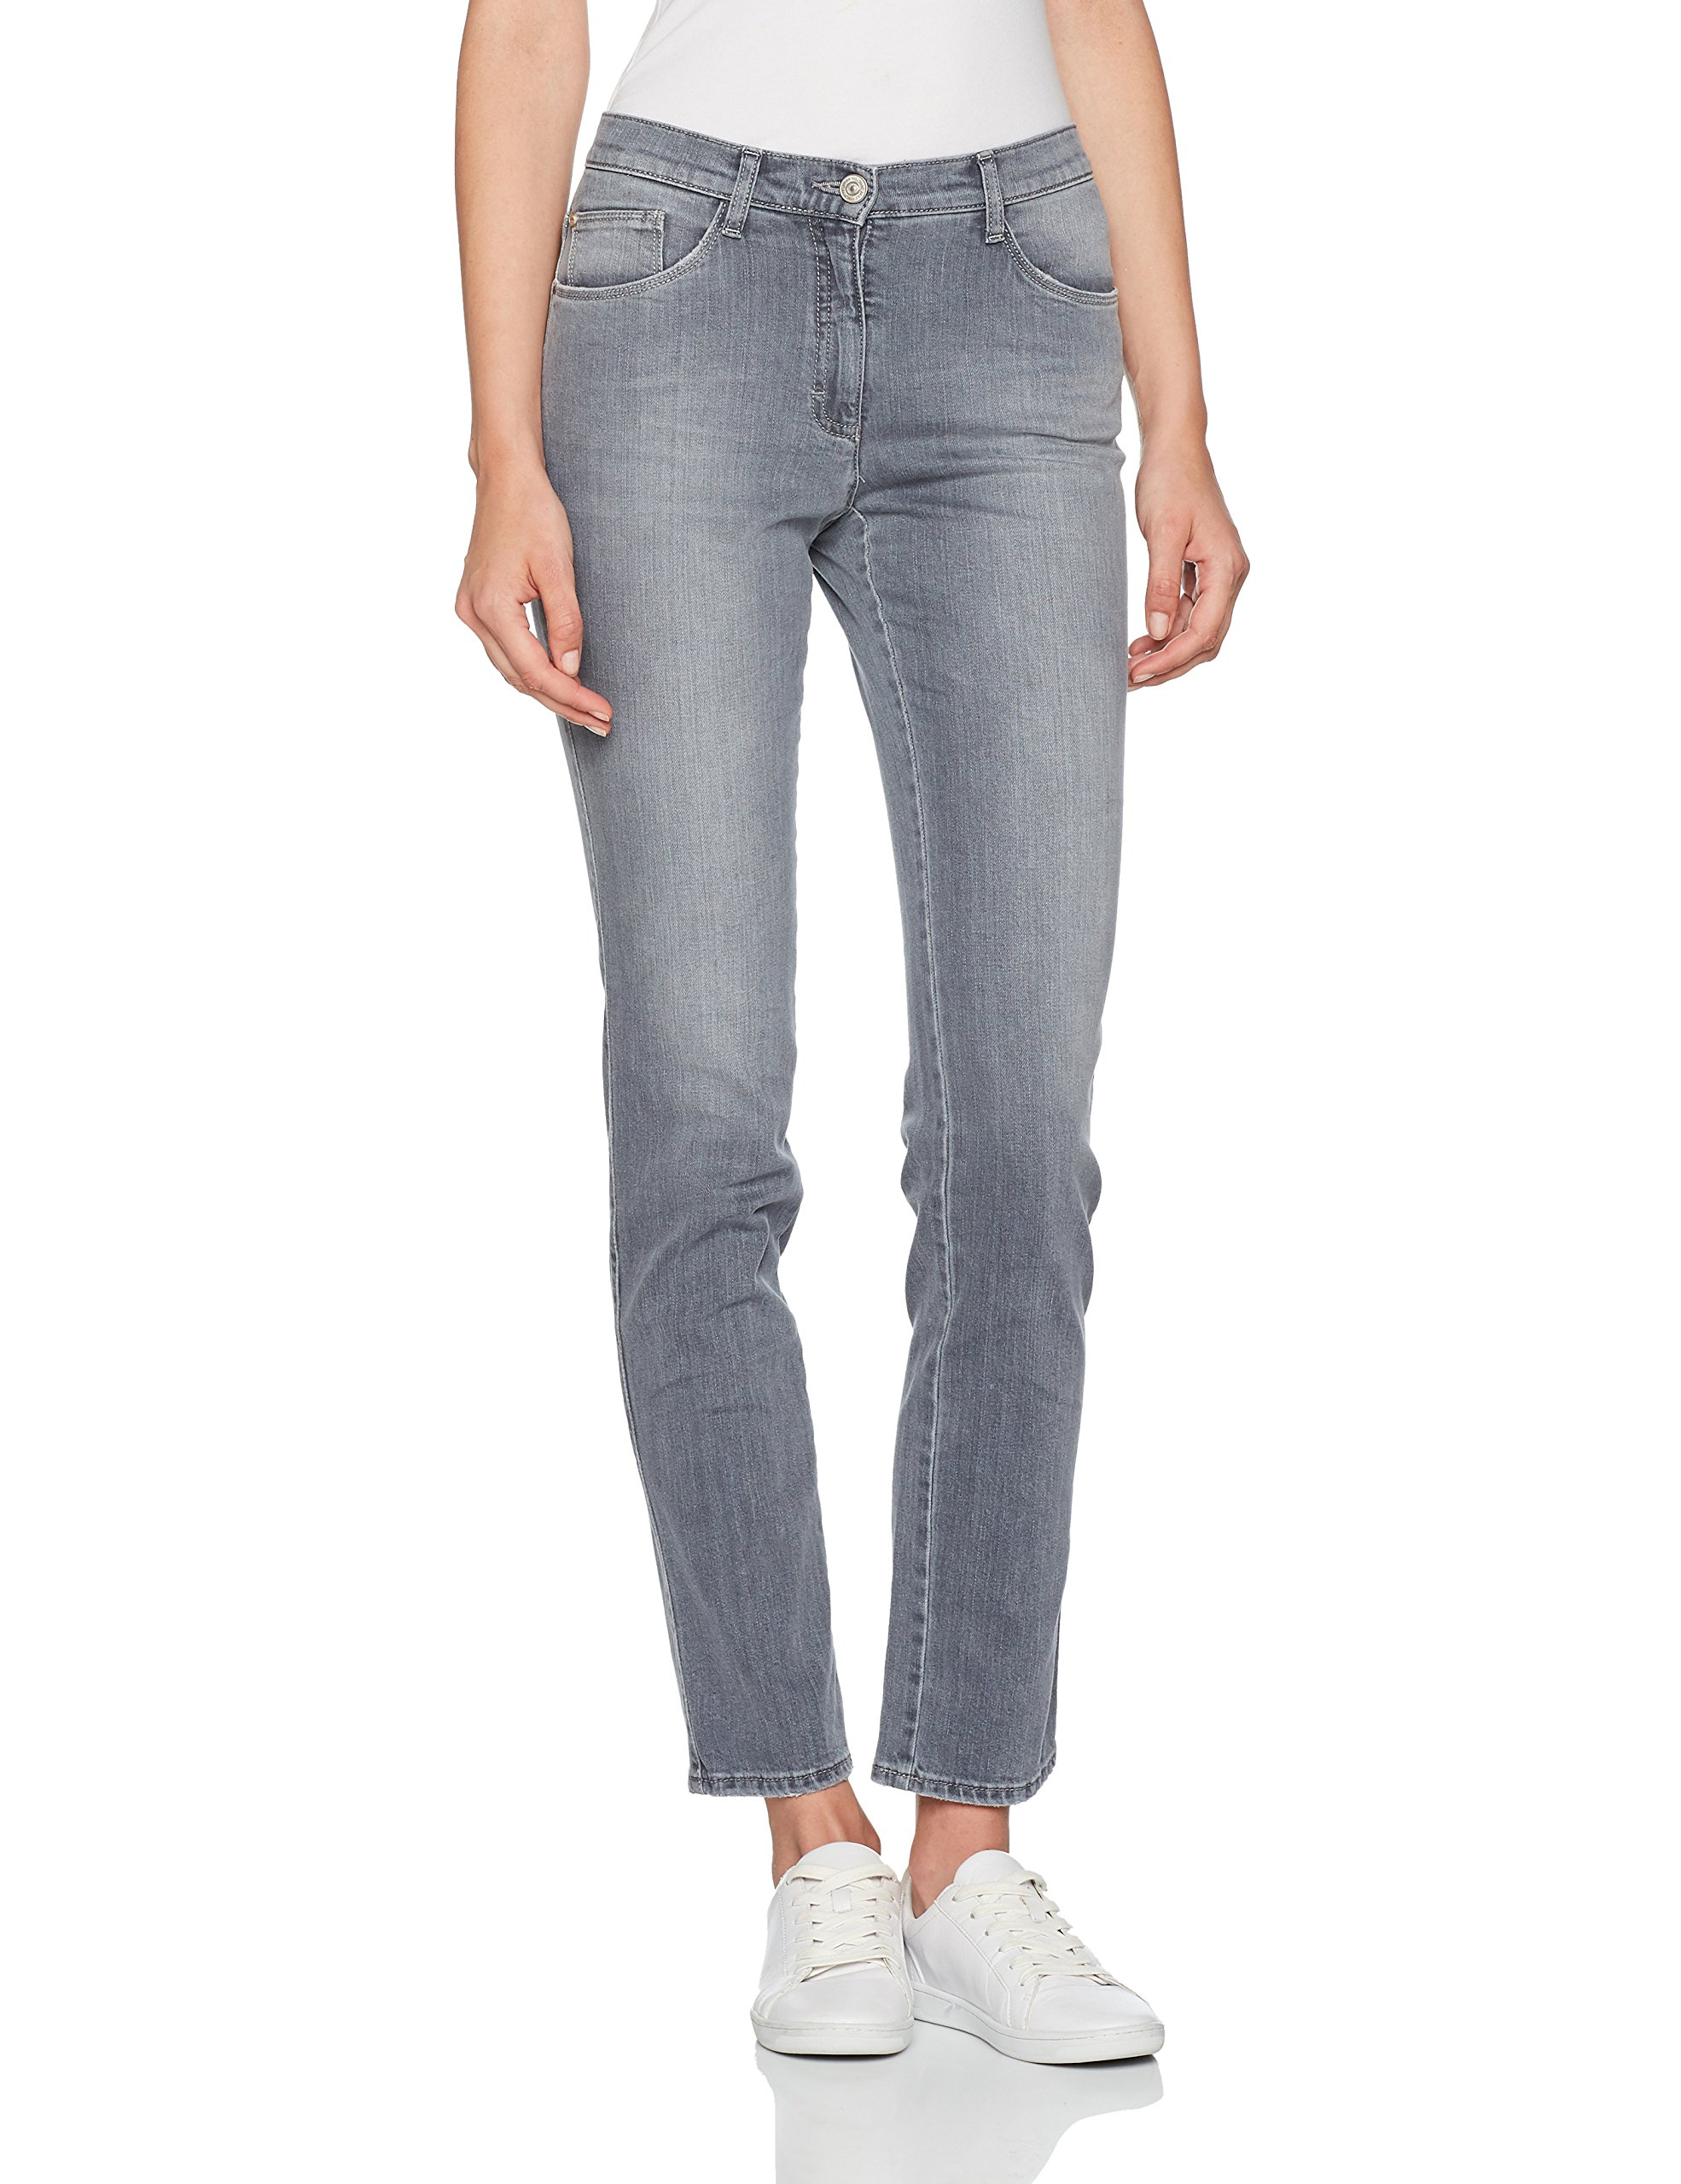 SlimGrisused Ltaille 534 mary Fabricant44Femme 32 Brax Bx Jean Silver Grey W wOPNkX8Z0n